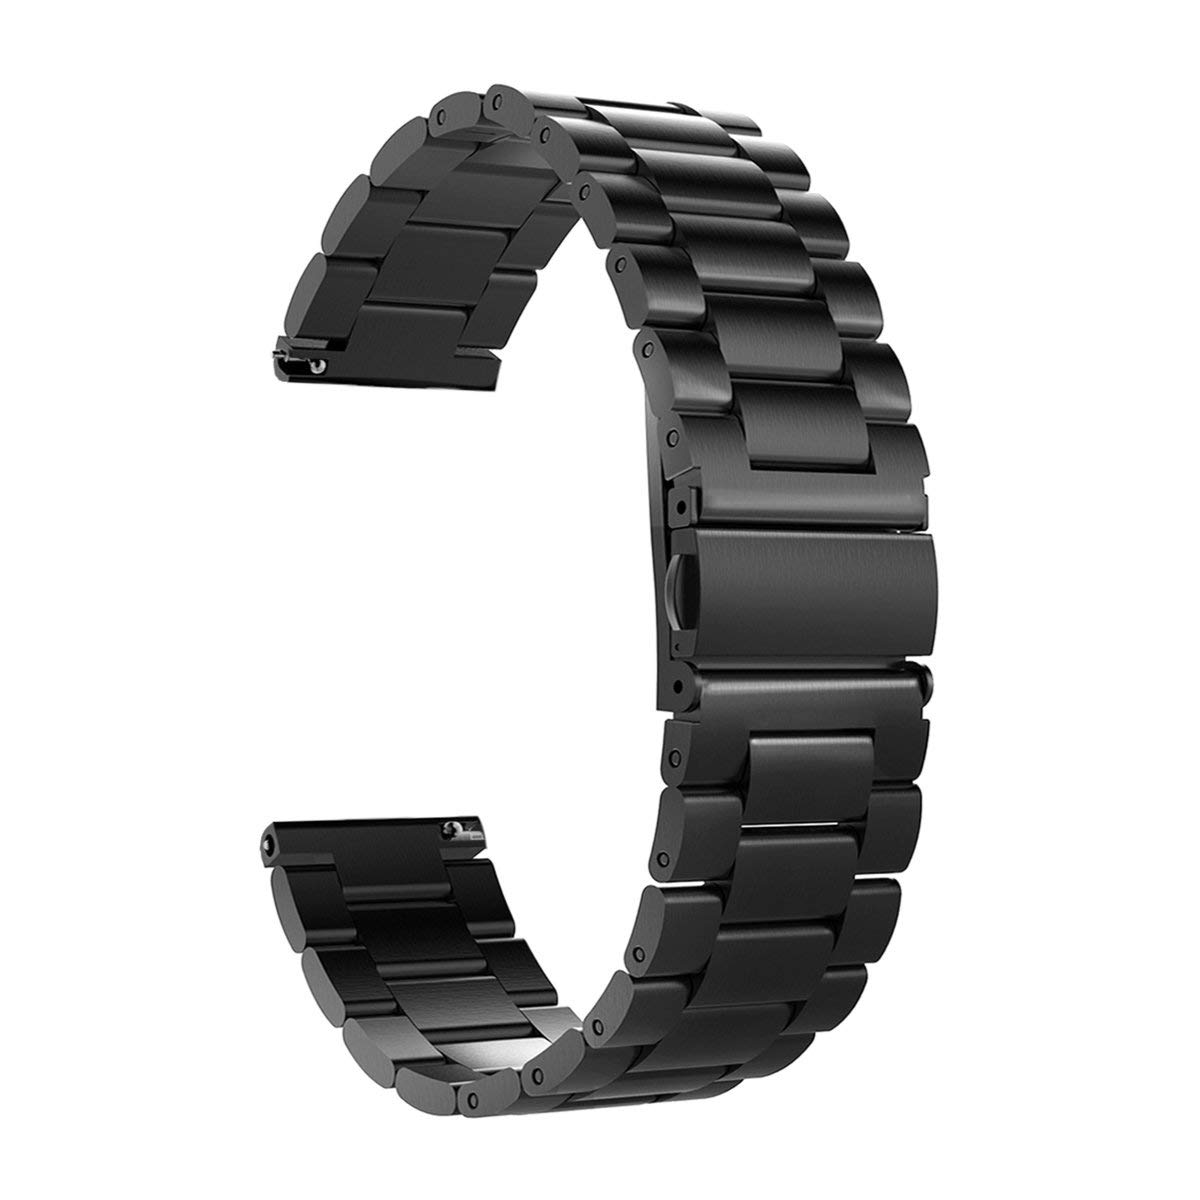 Gear S3 Frontier/Classic Bands, Valkit 22mm Solid Stainless Steel Metal Replacement Smart Watch Band Link Bracelet Strap for Samsung Gear S3 Frontier/S3 Classic Smart Watch Large Size - Black